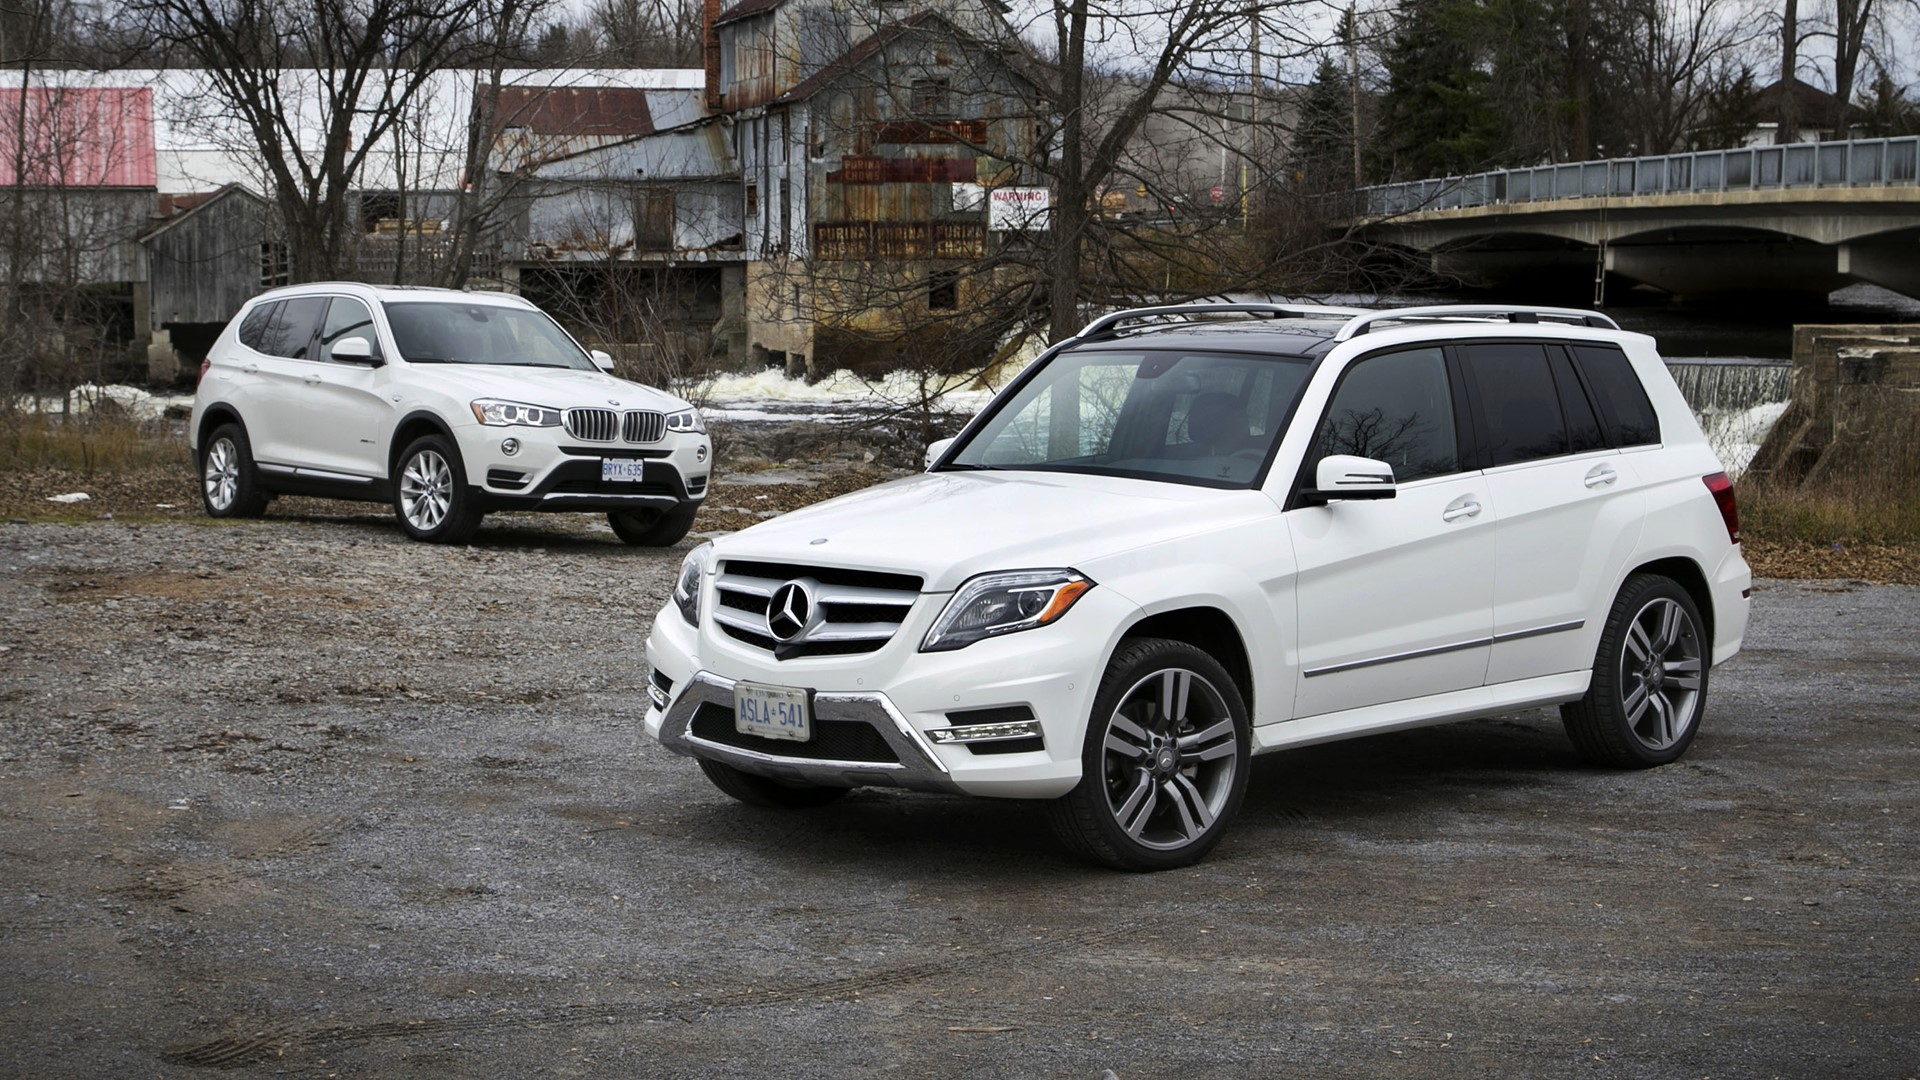 73 A 2020 Mercedes Benz GLK Exterior and Interior